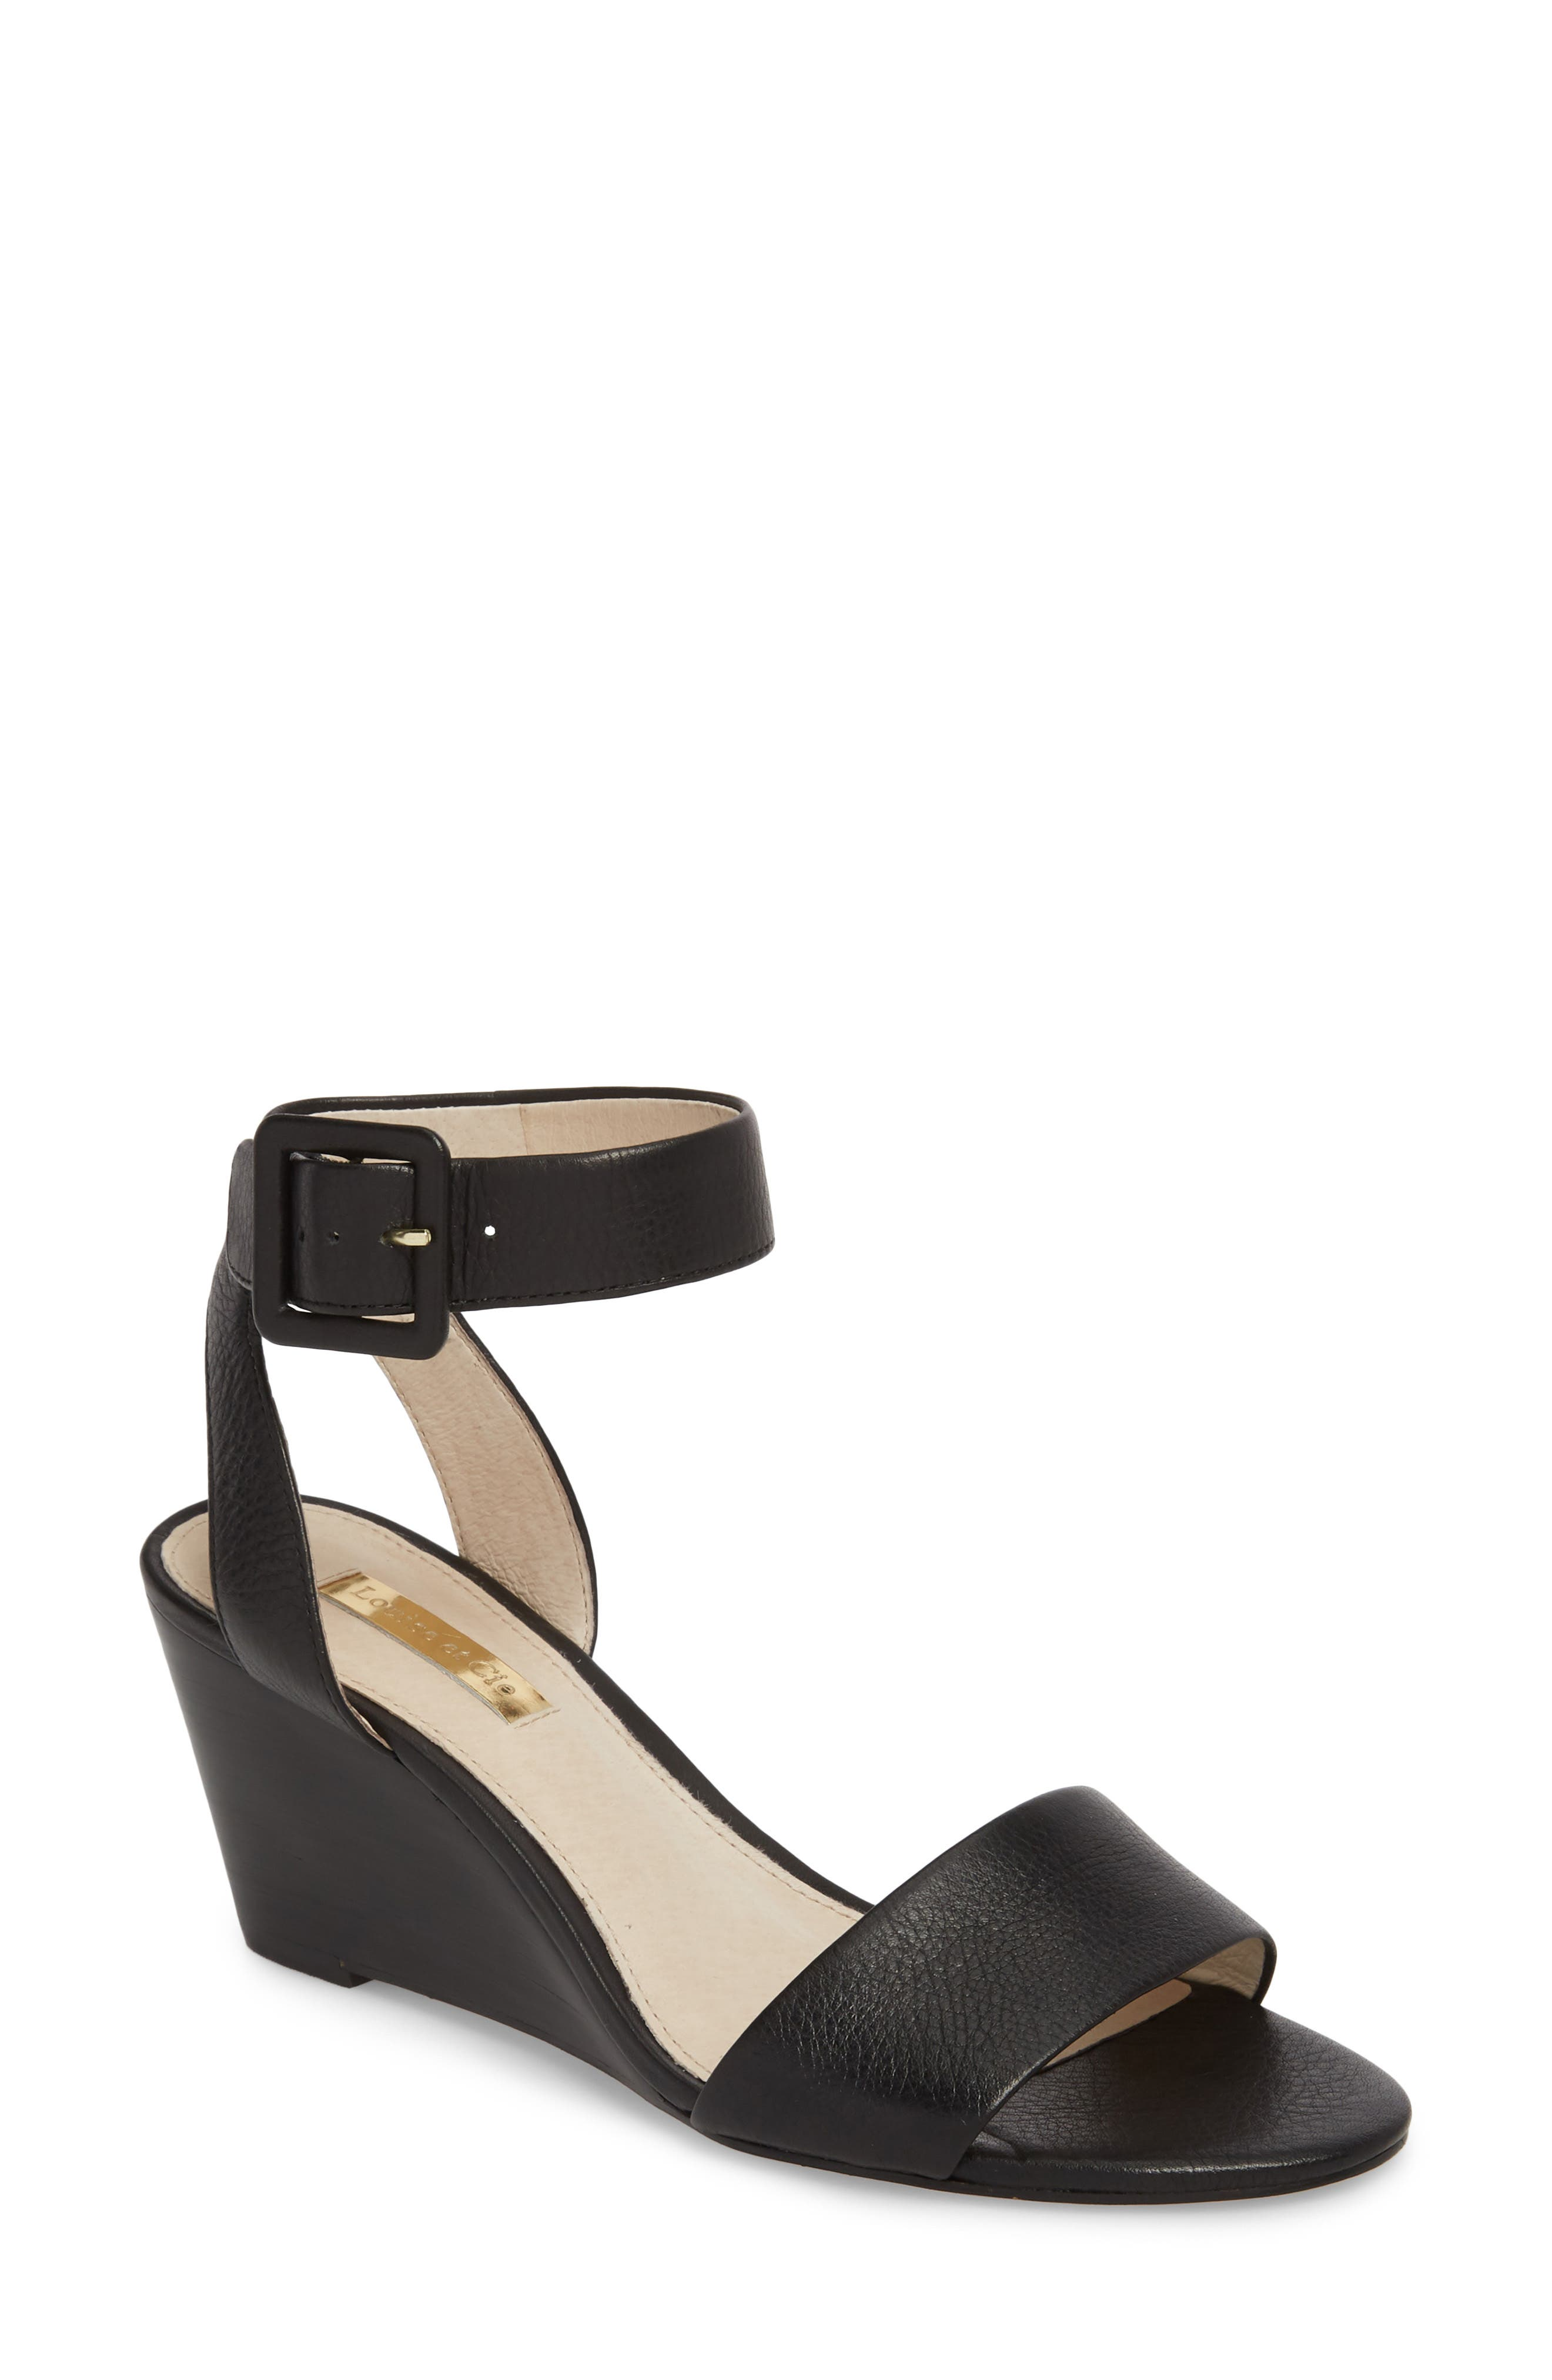 LOUISE ET CIE Punya Wedge Sandal, Main, color, BLACK LEATHER